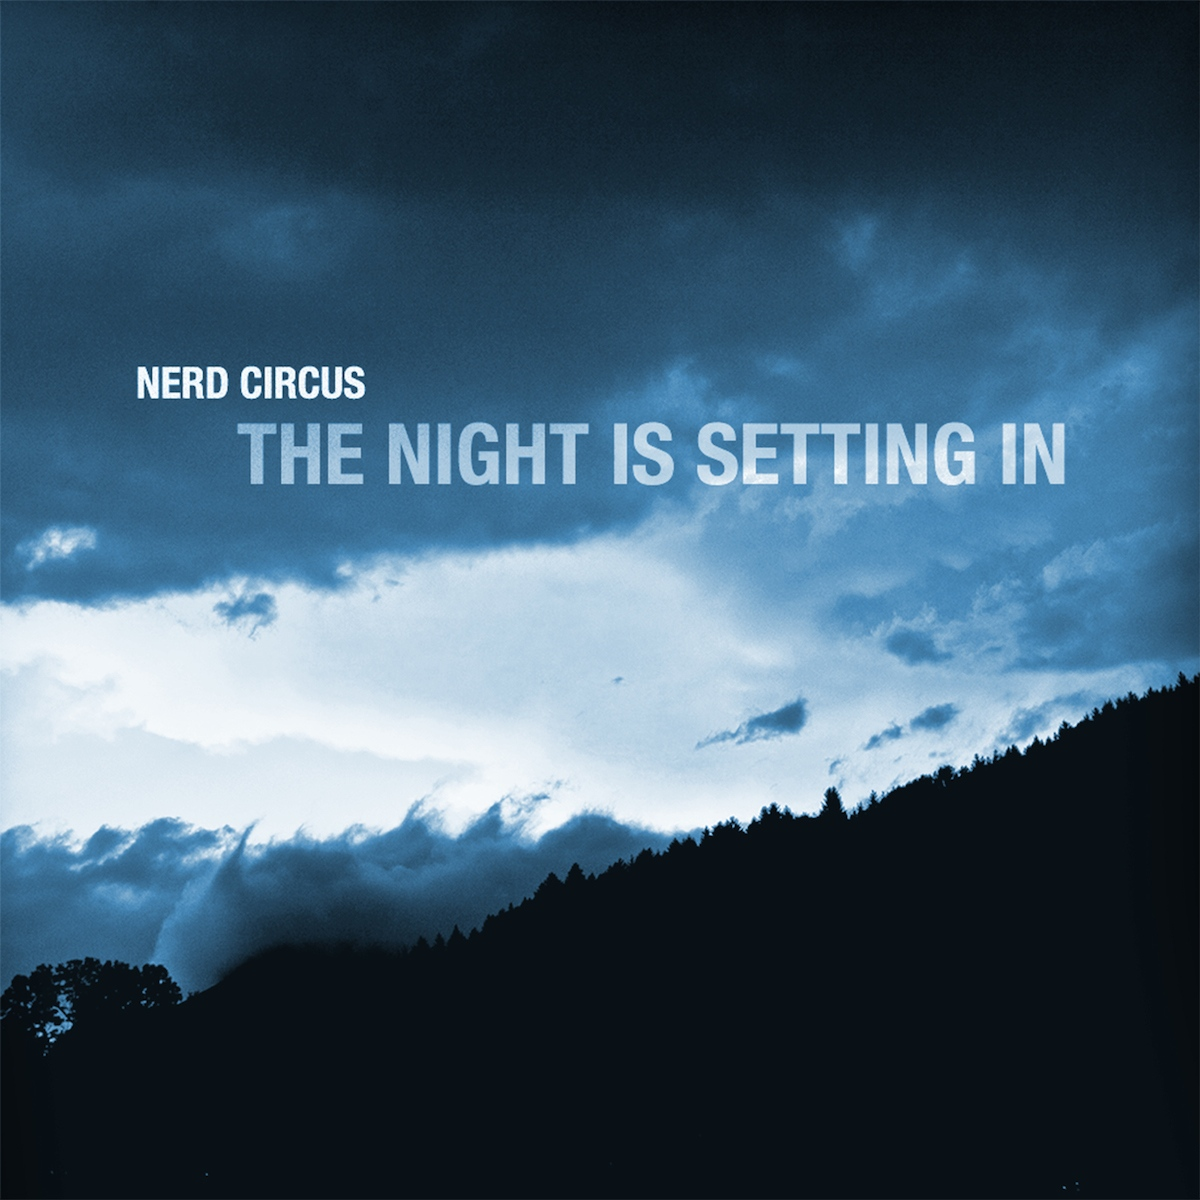 The Nerd Circus - The Night Is Setting In